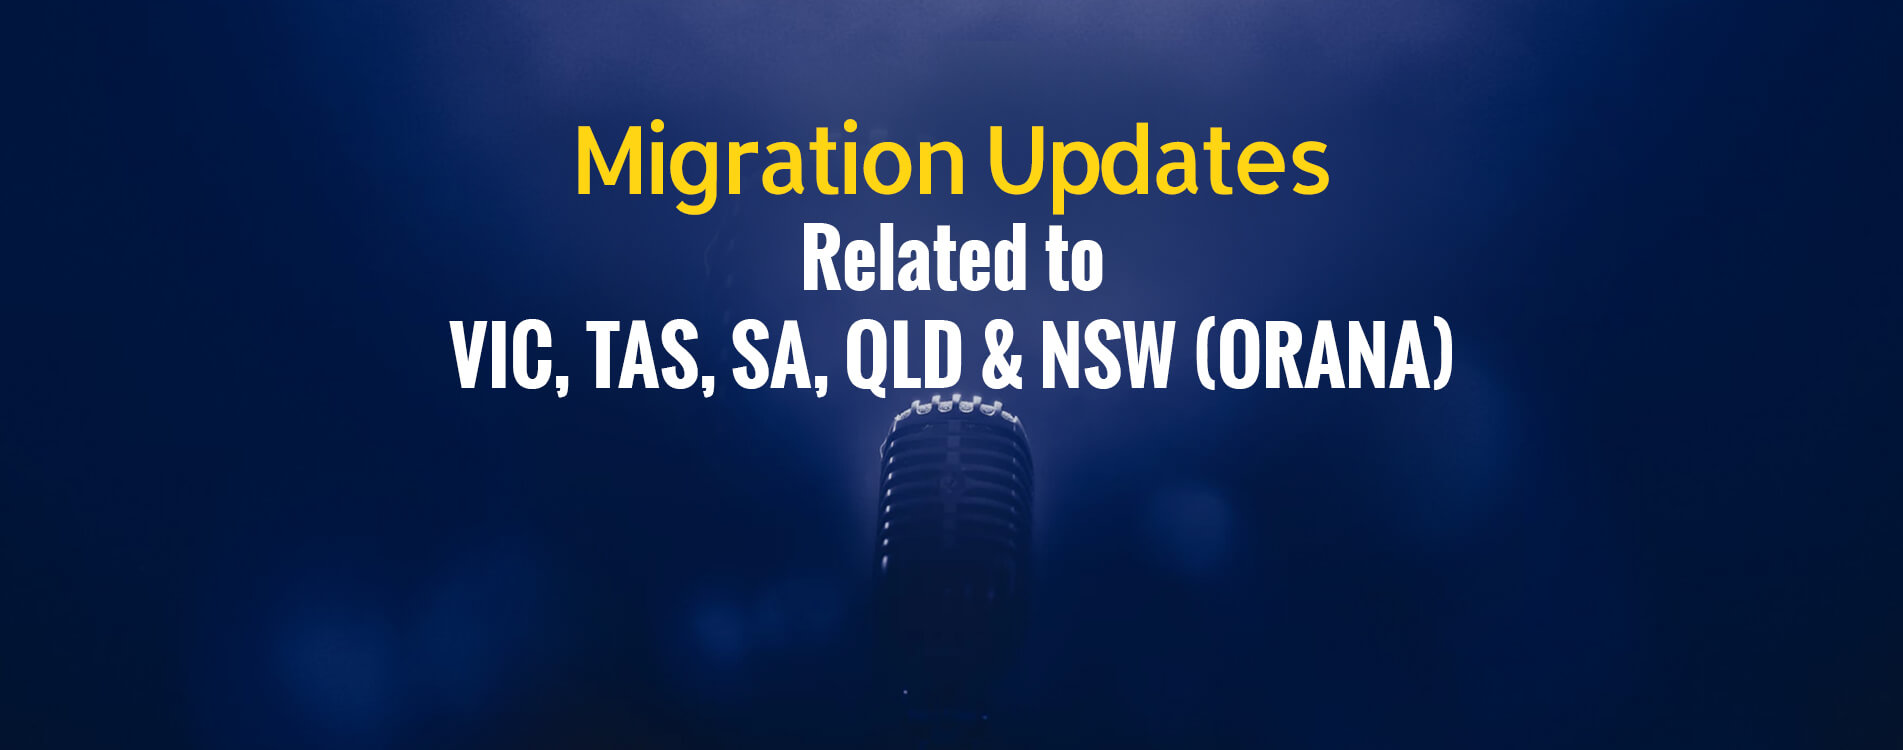 Recent & Upcoming Migration Updates July 2019